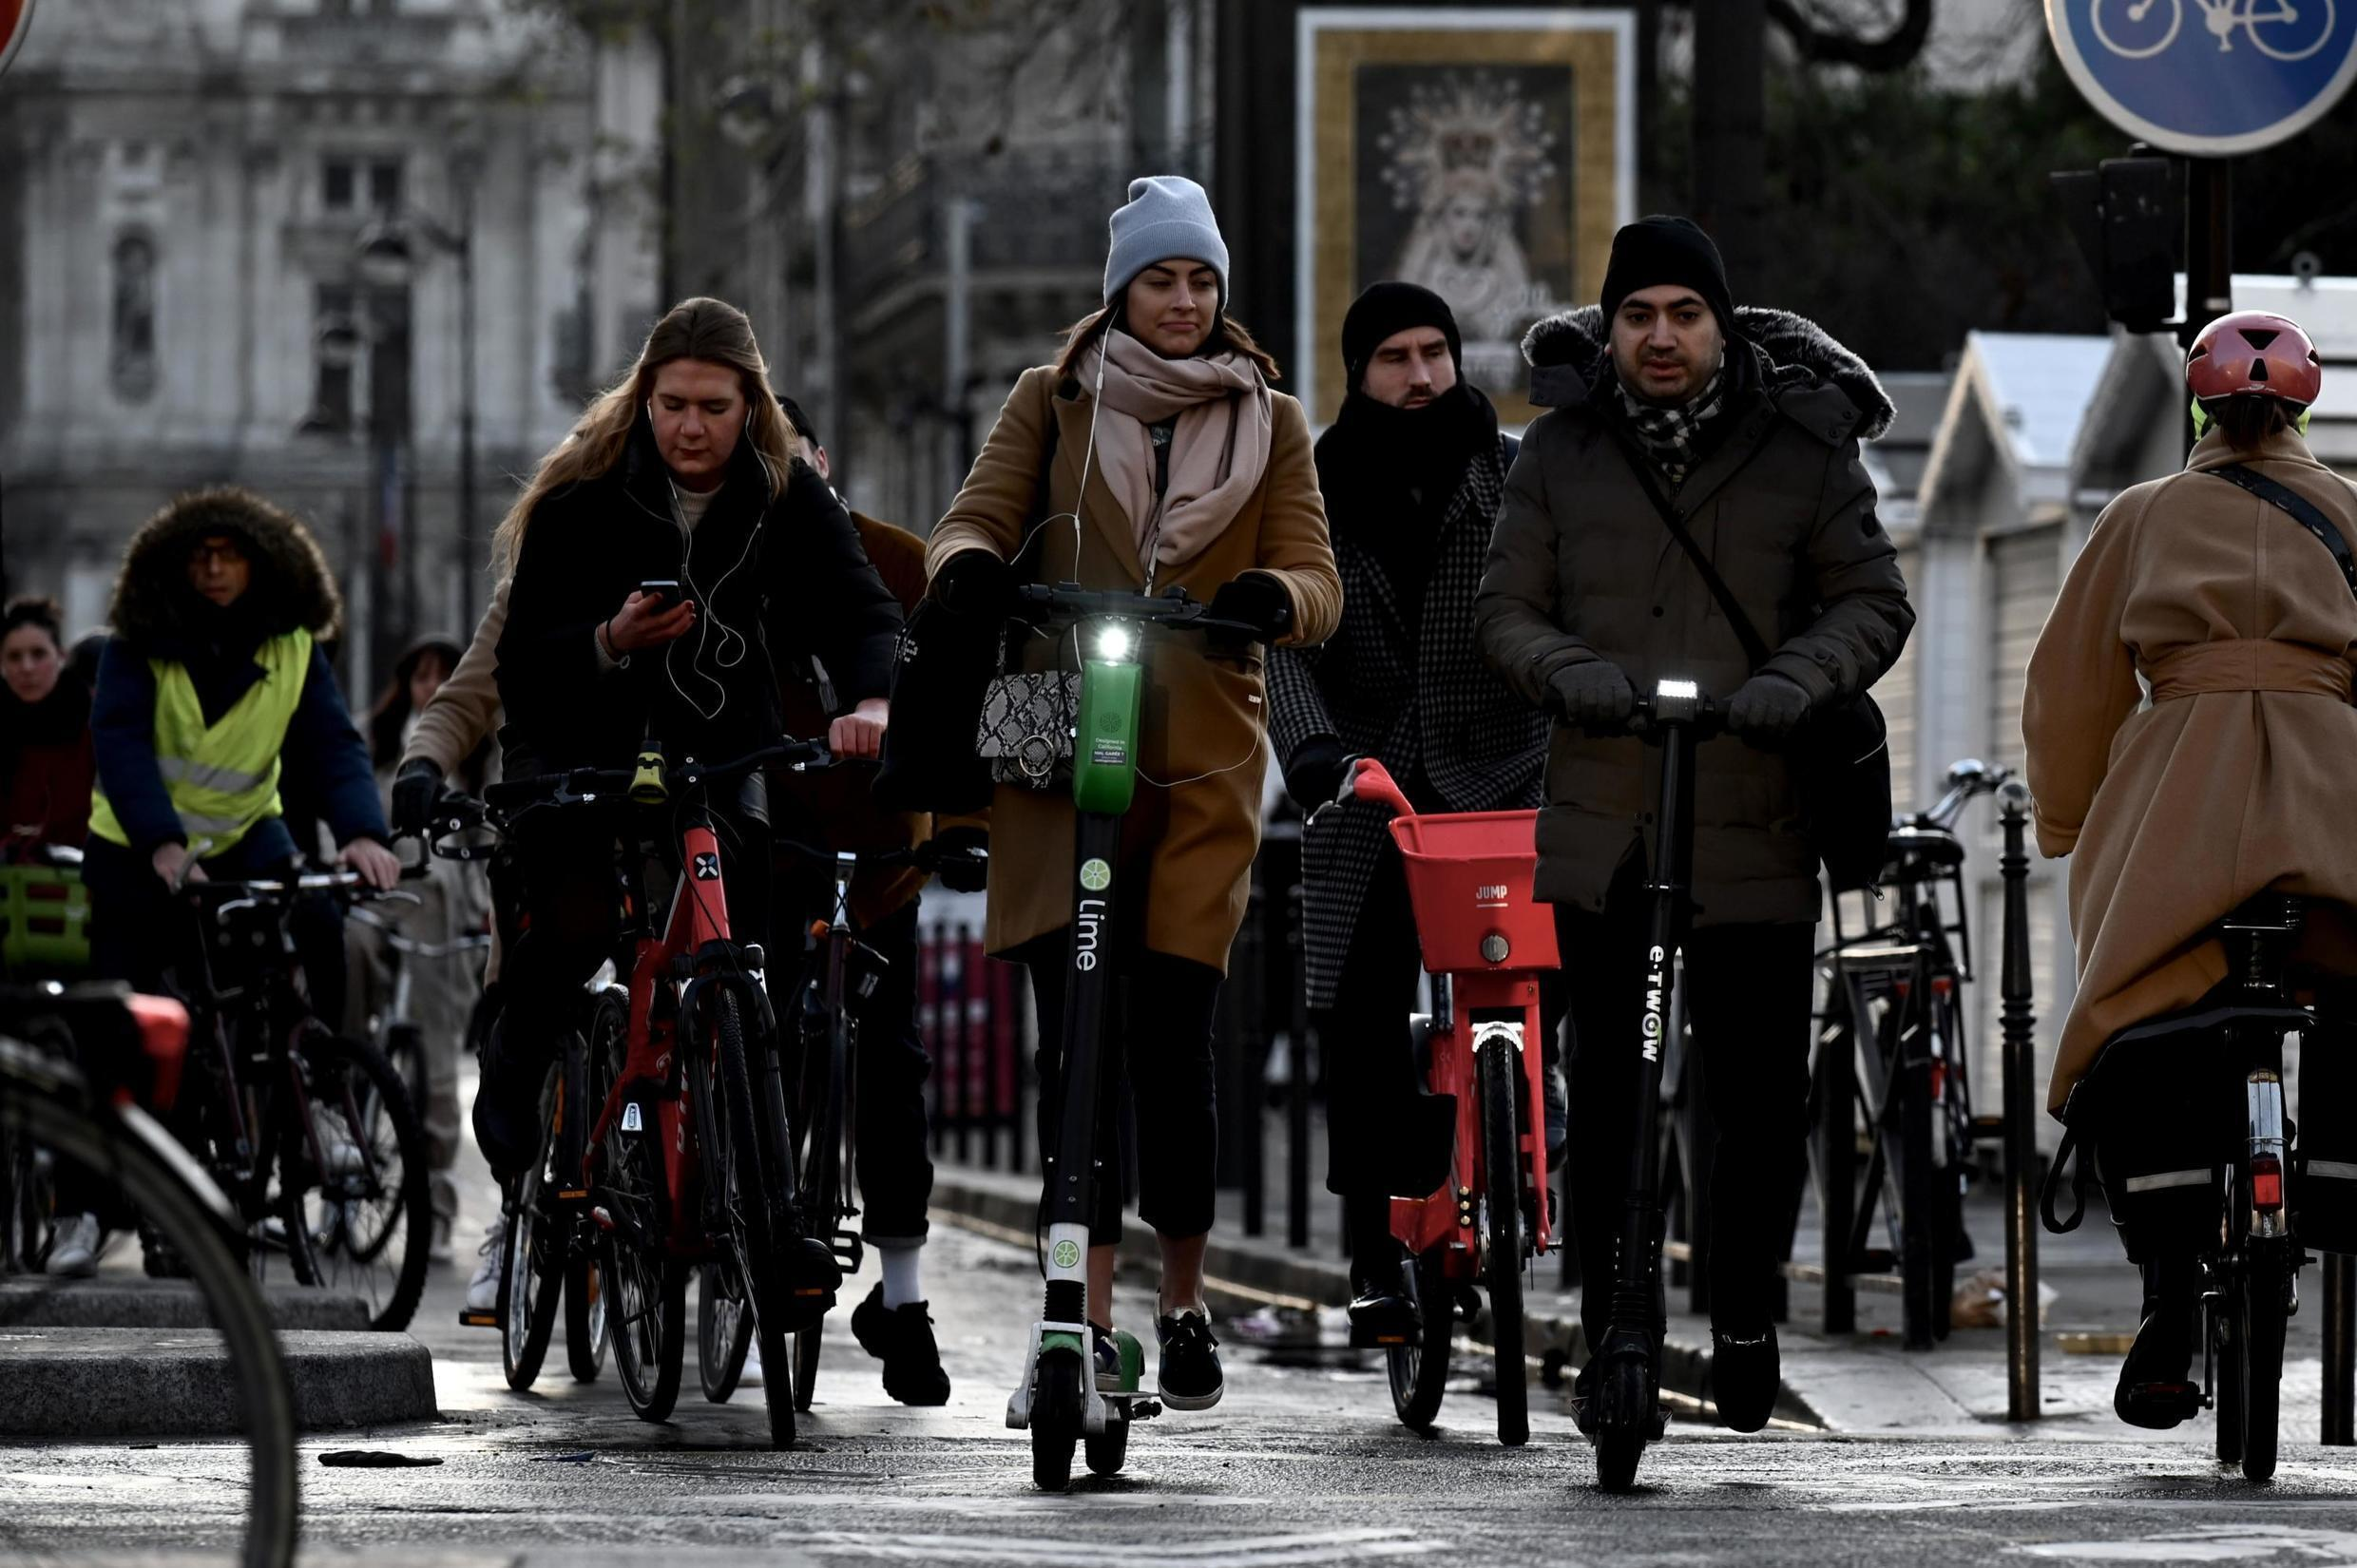 An increase in Parisians commuting by bicycle and electric scooter has pedestrians on edge.